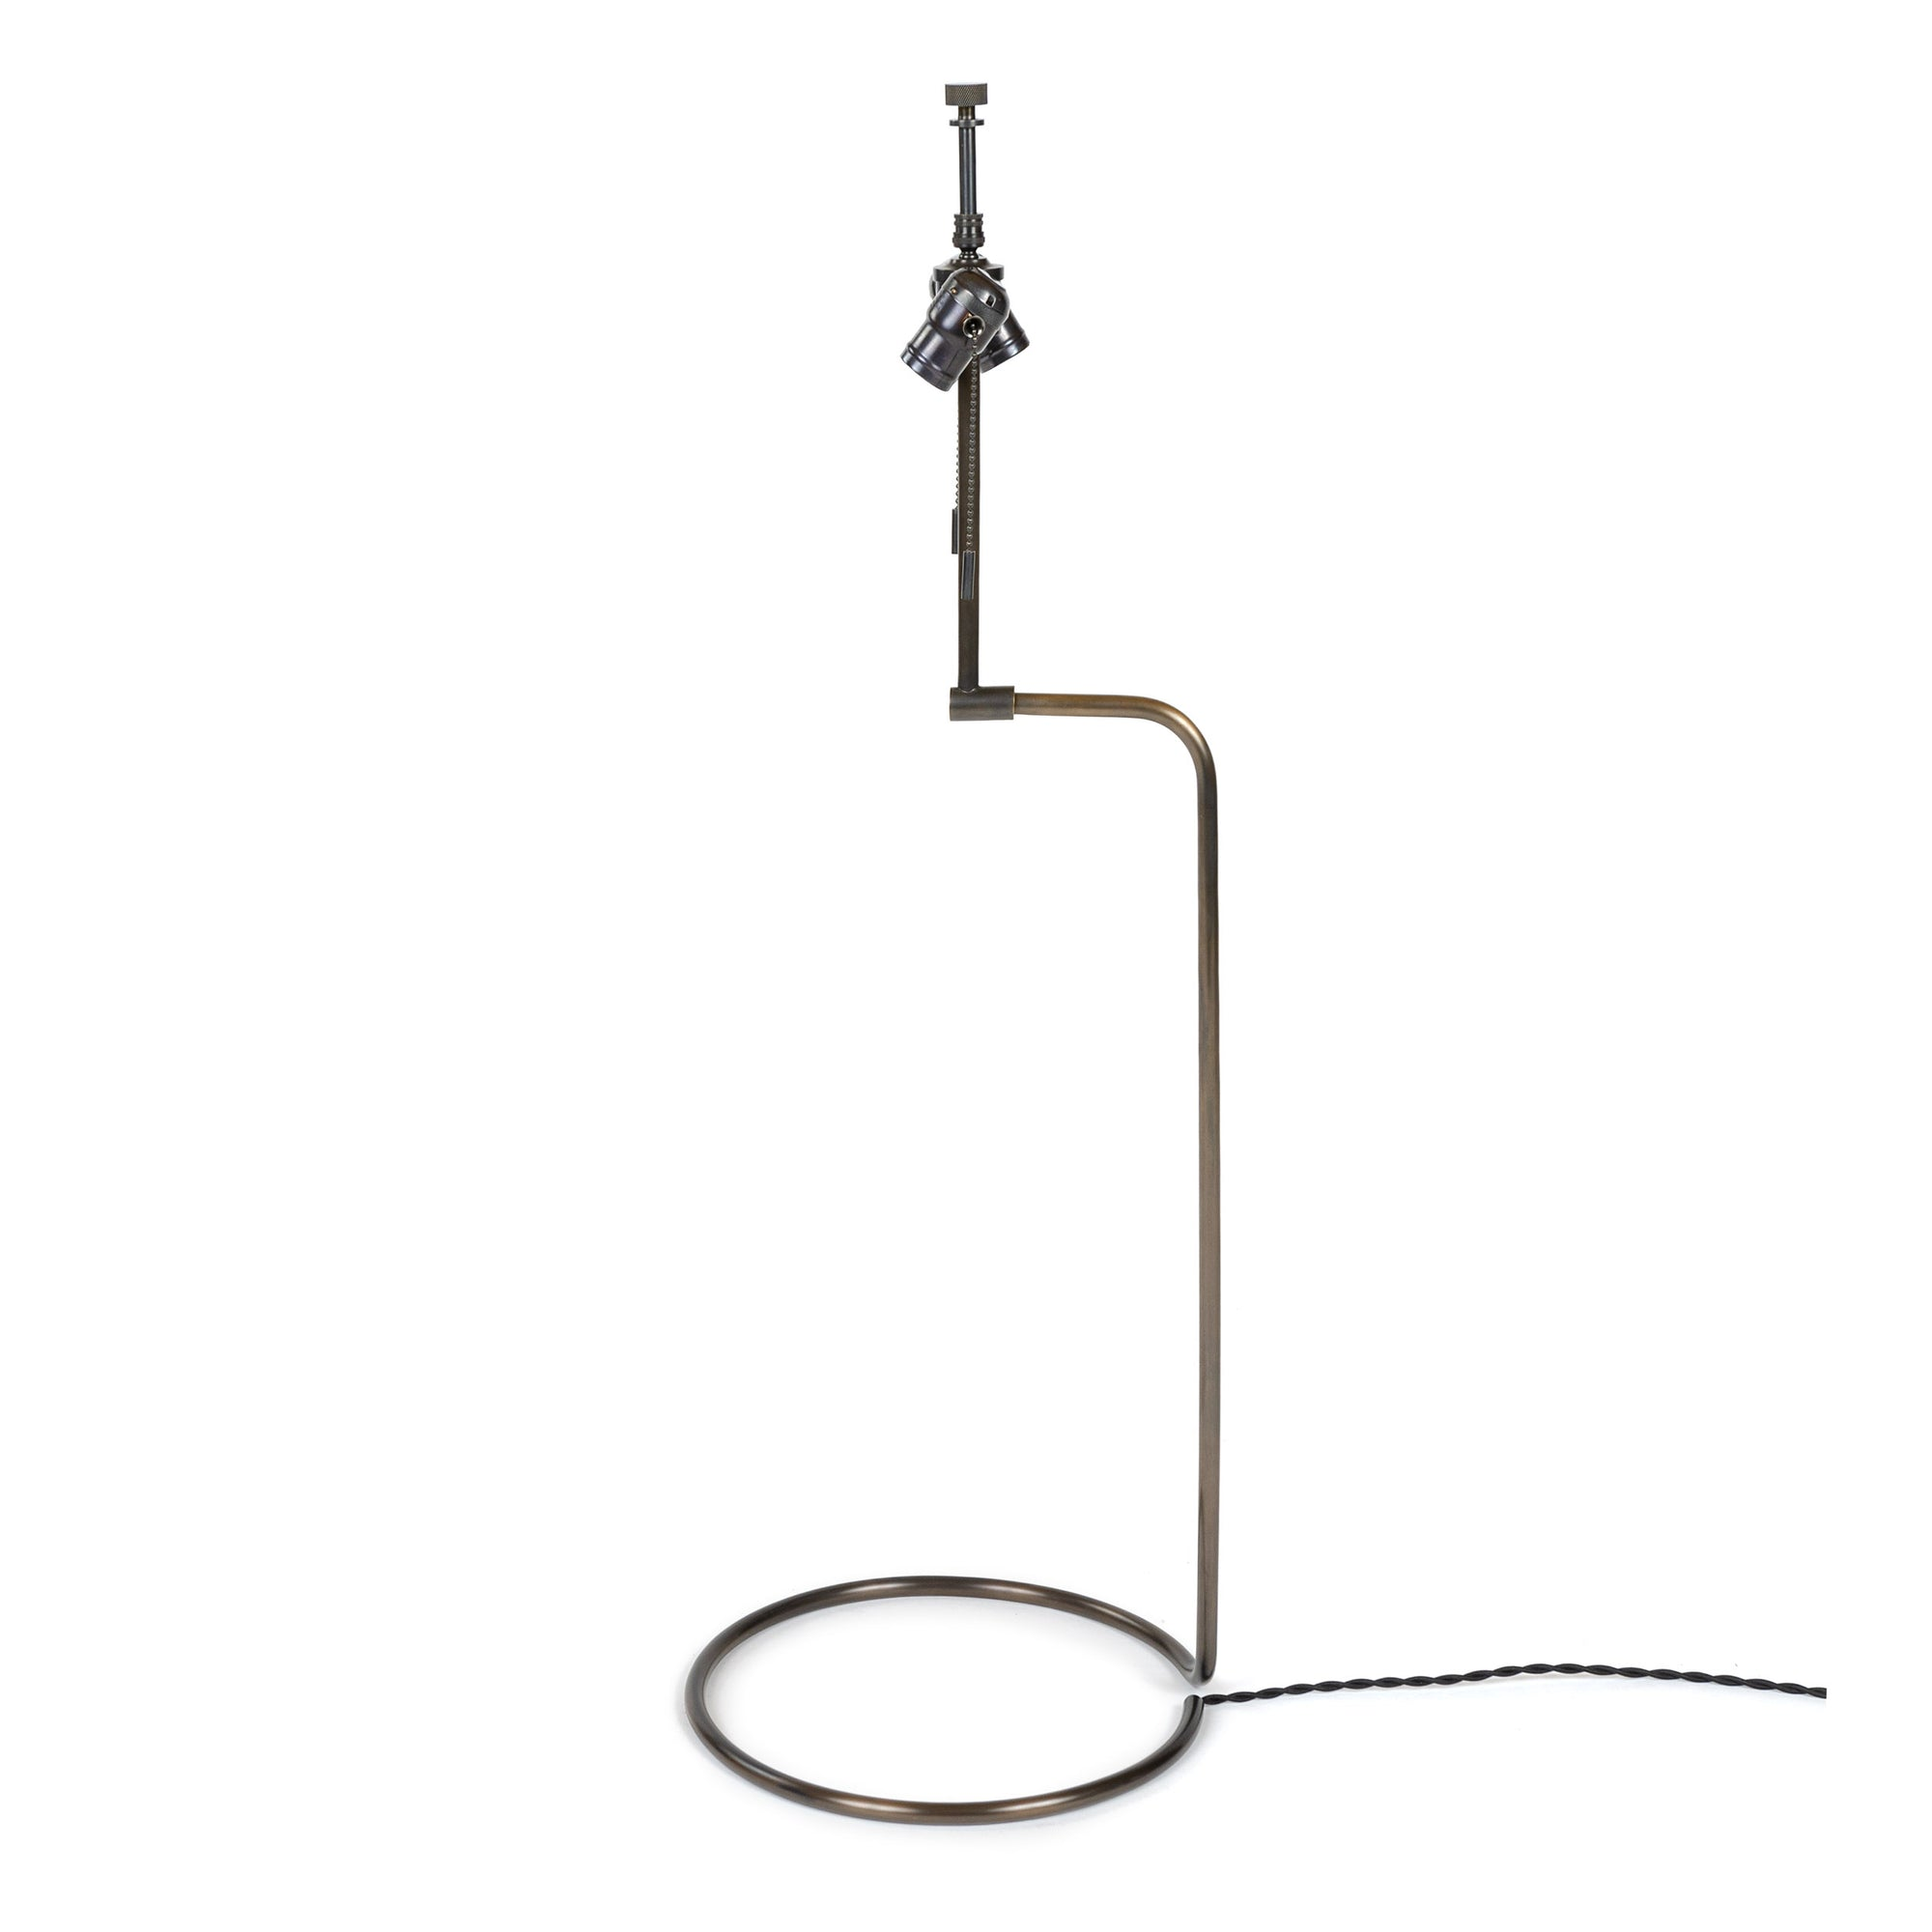 WYETH Original Tall 'Rope' Table Lamp in Blackened Bronze